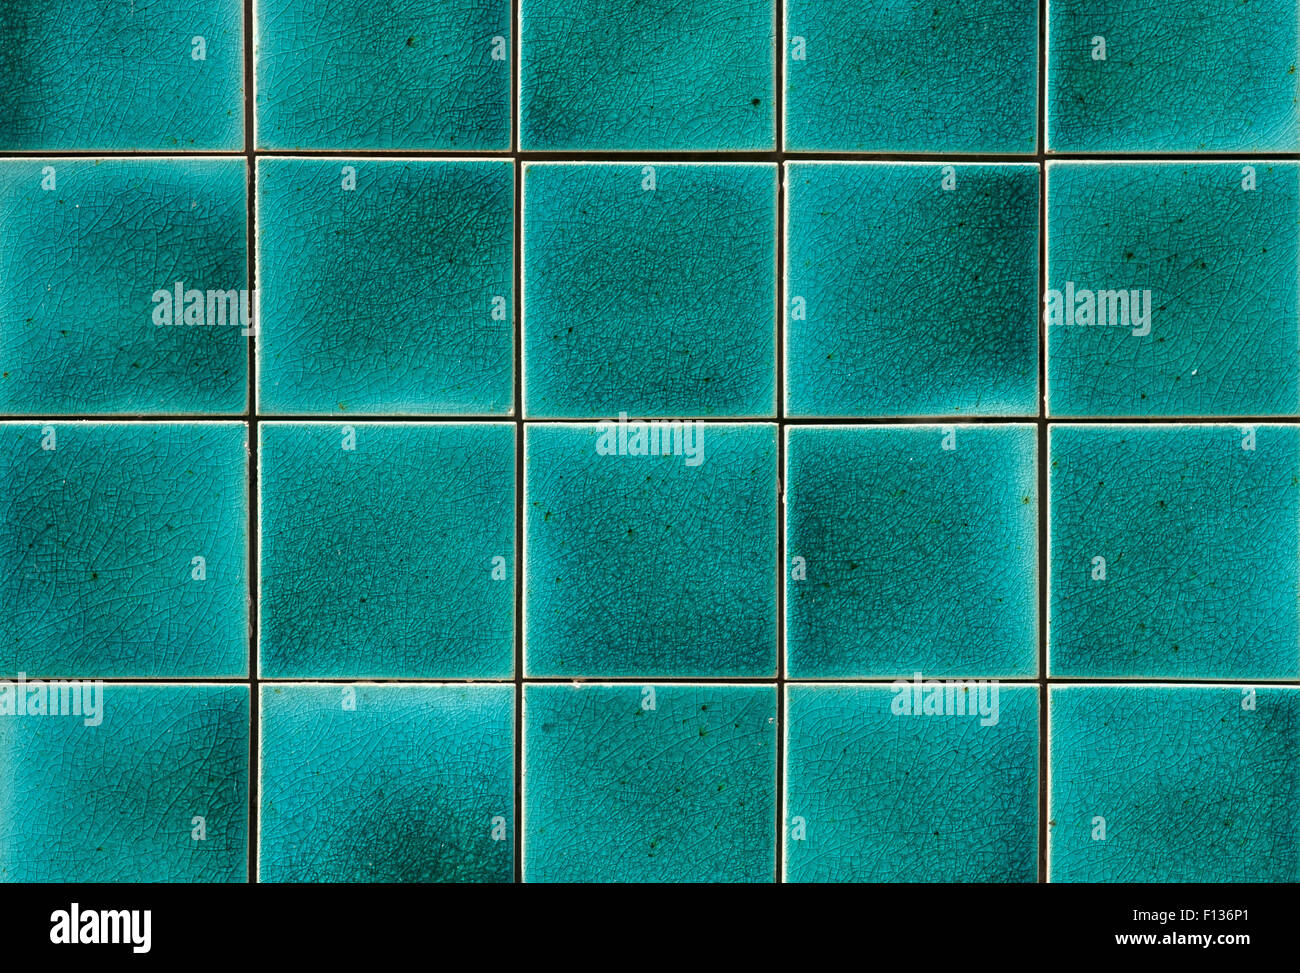 Tile Ceramic Background Turquoise Stock Photos & Tile Ceramic ...